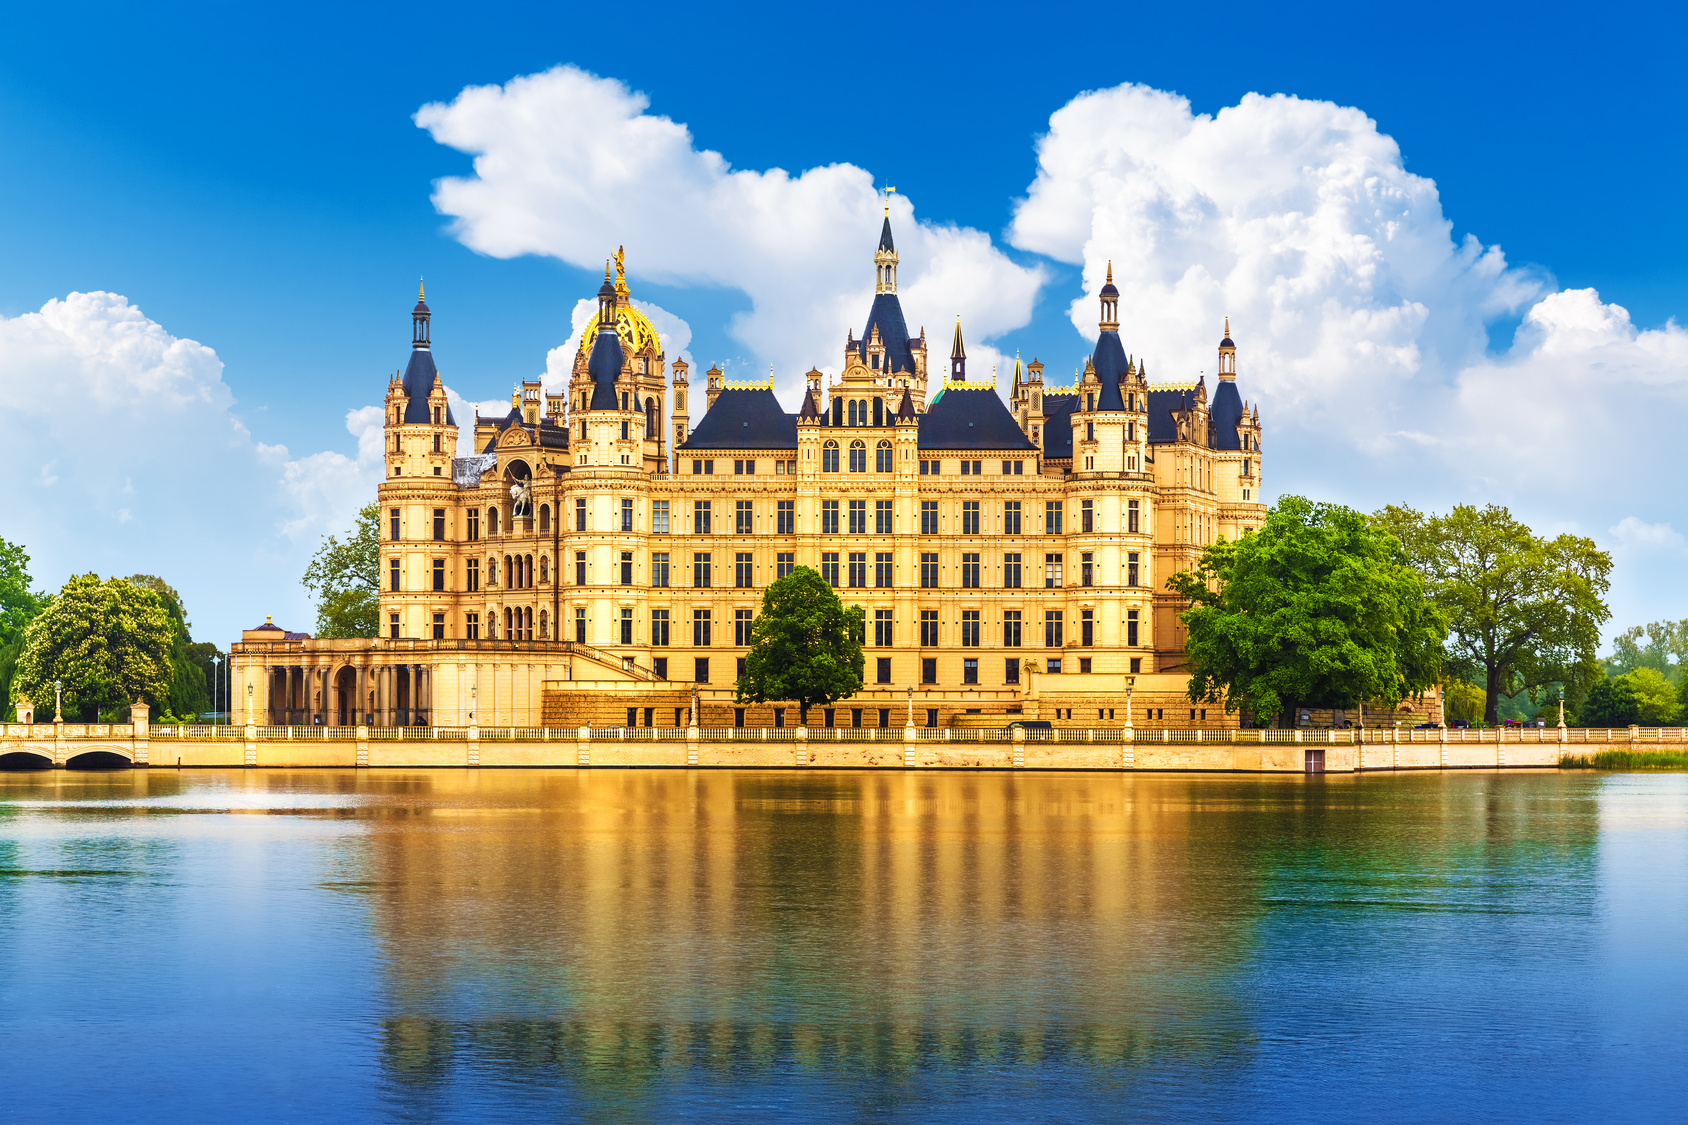 Scenic summer view of ancient castle in Schwerin, Mecklenburg region, Germany